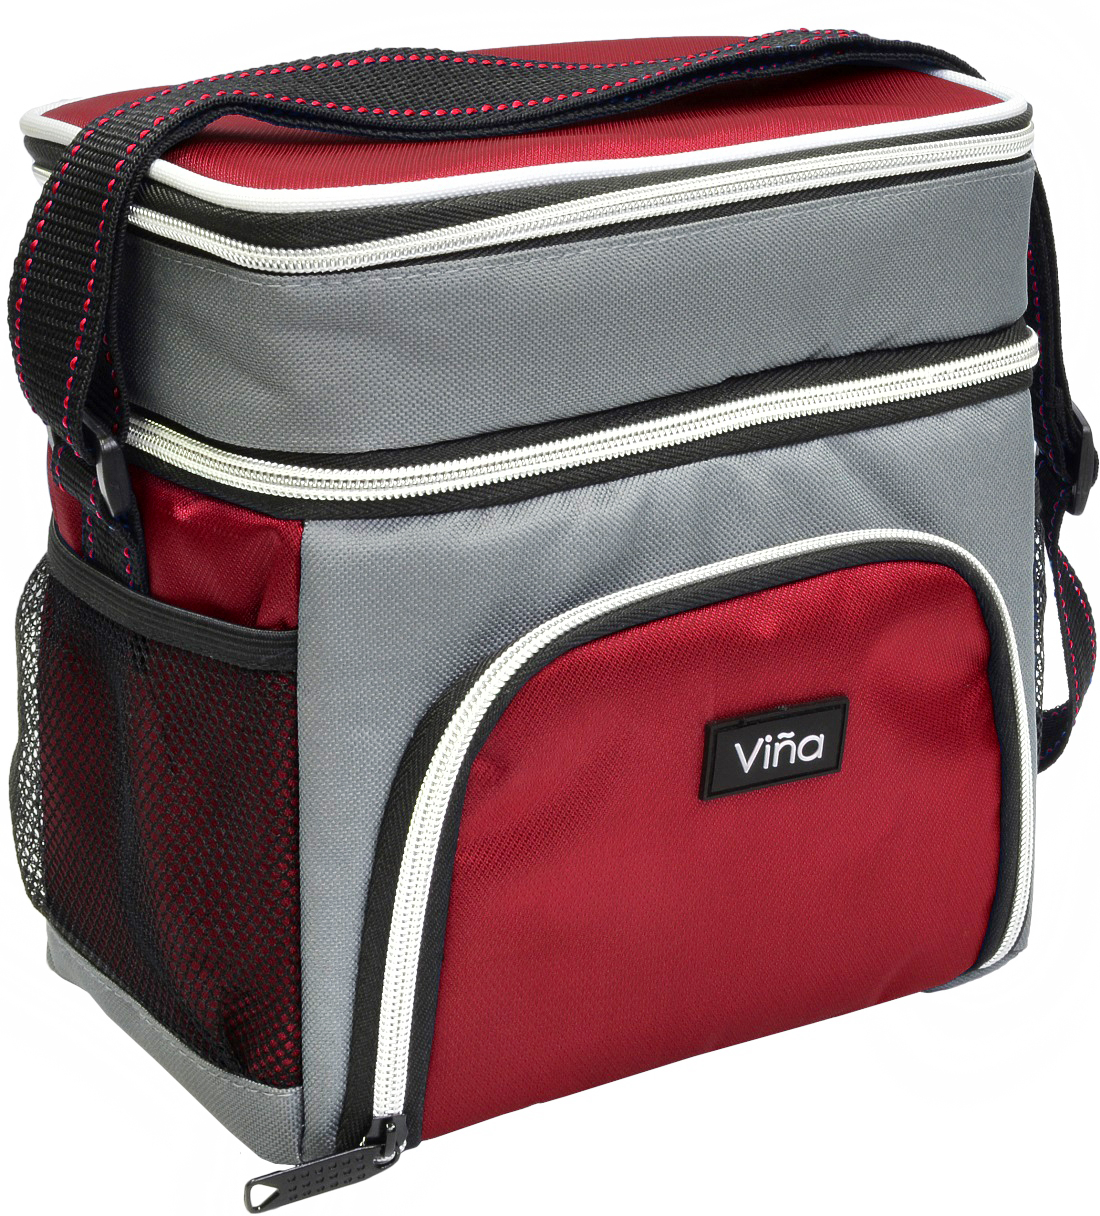 Vina 600D Lunch Bag Cooler Tote - Thermal Insulated Double Compartment with Zipper Closure Adjustable Shoulder Strap - Grey/Red